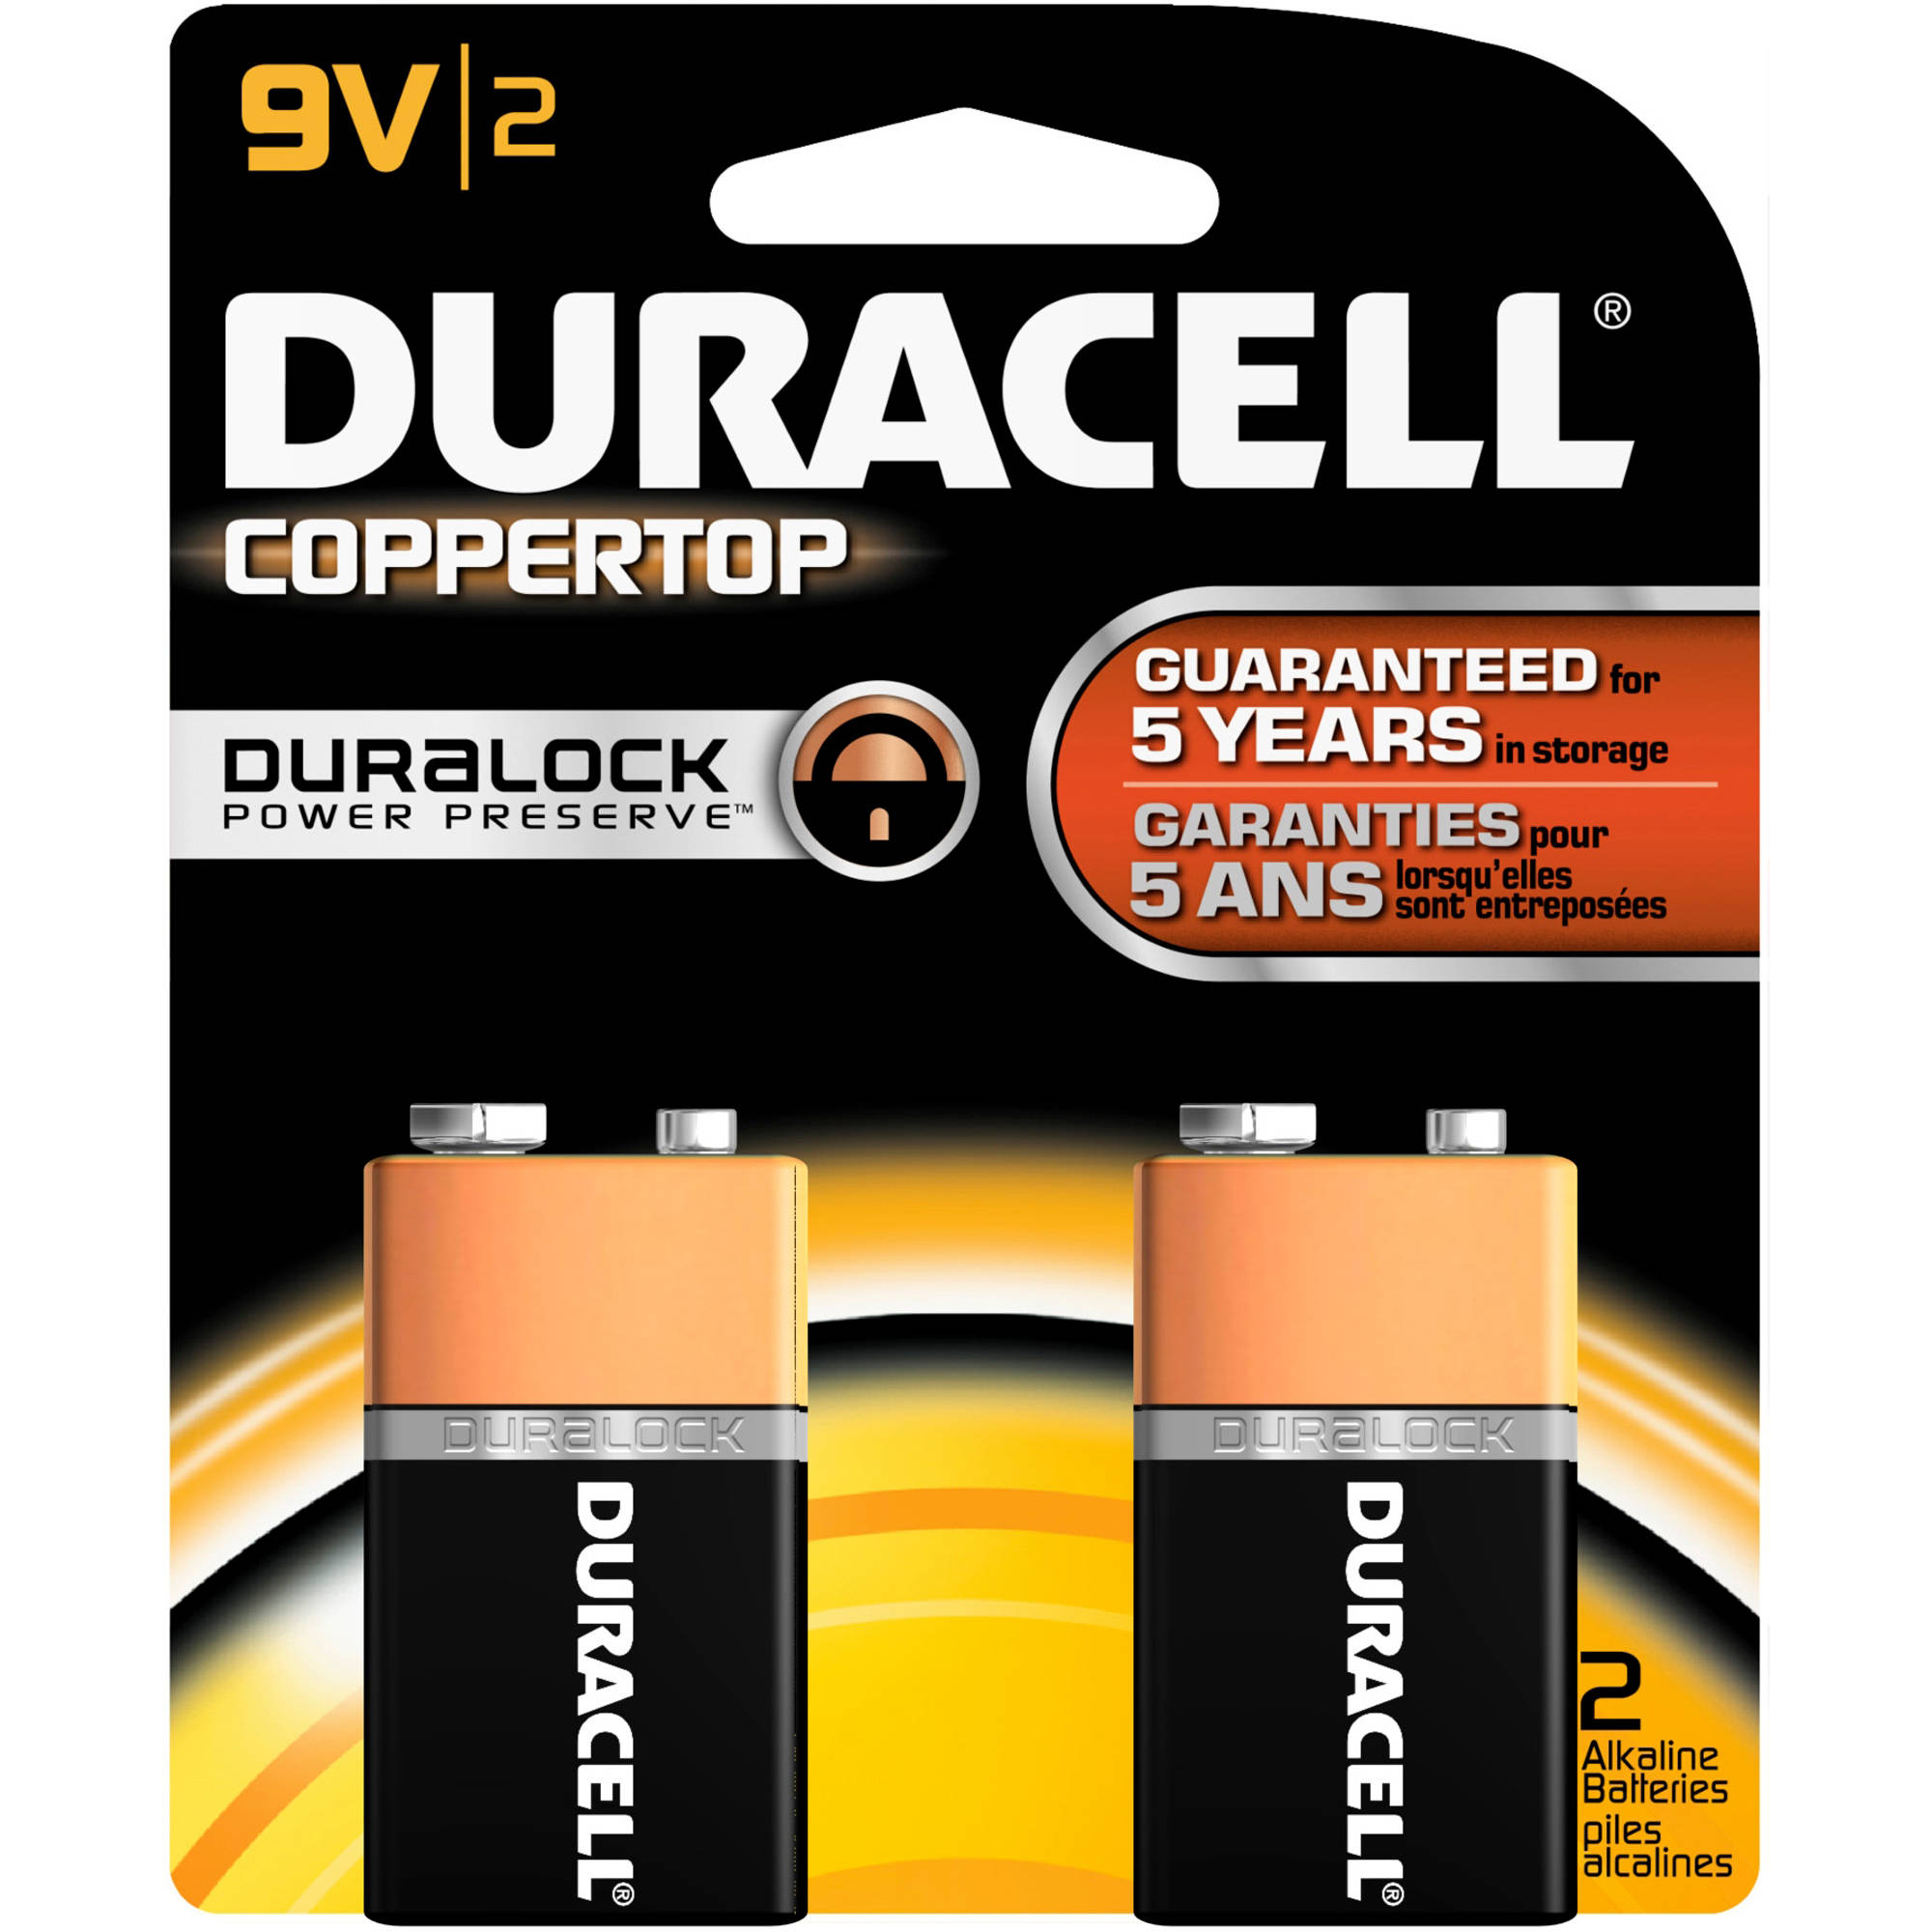 Duracell CopperTop Alkaline 9V Batteries, 2 count